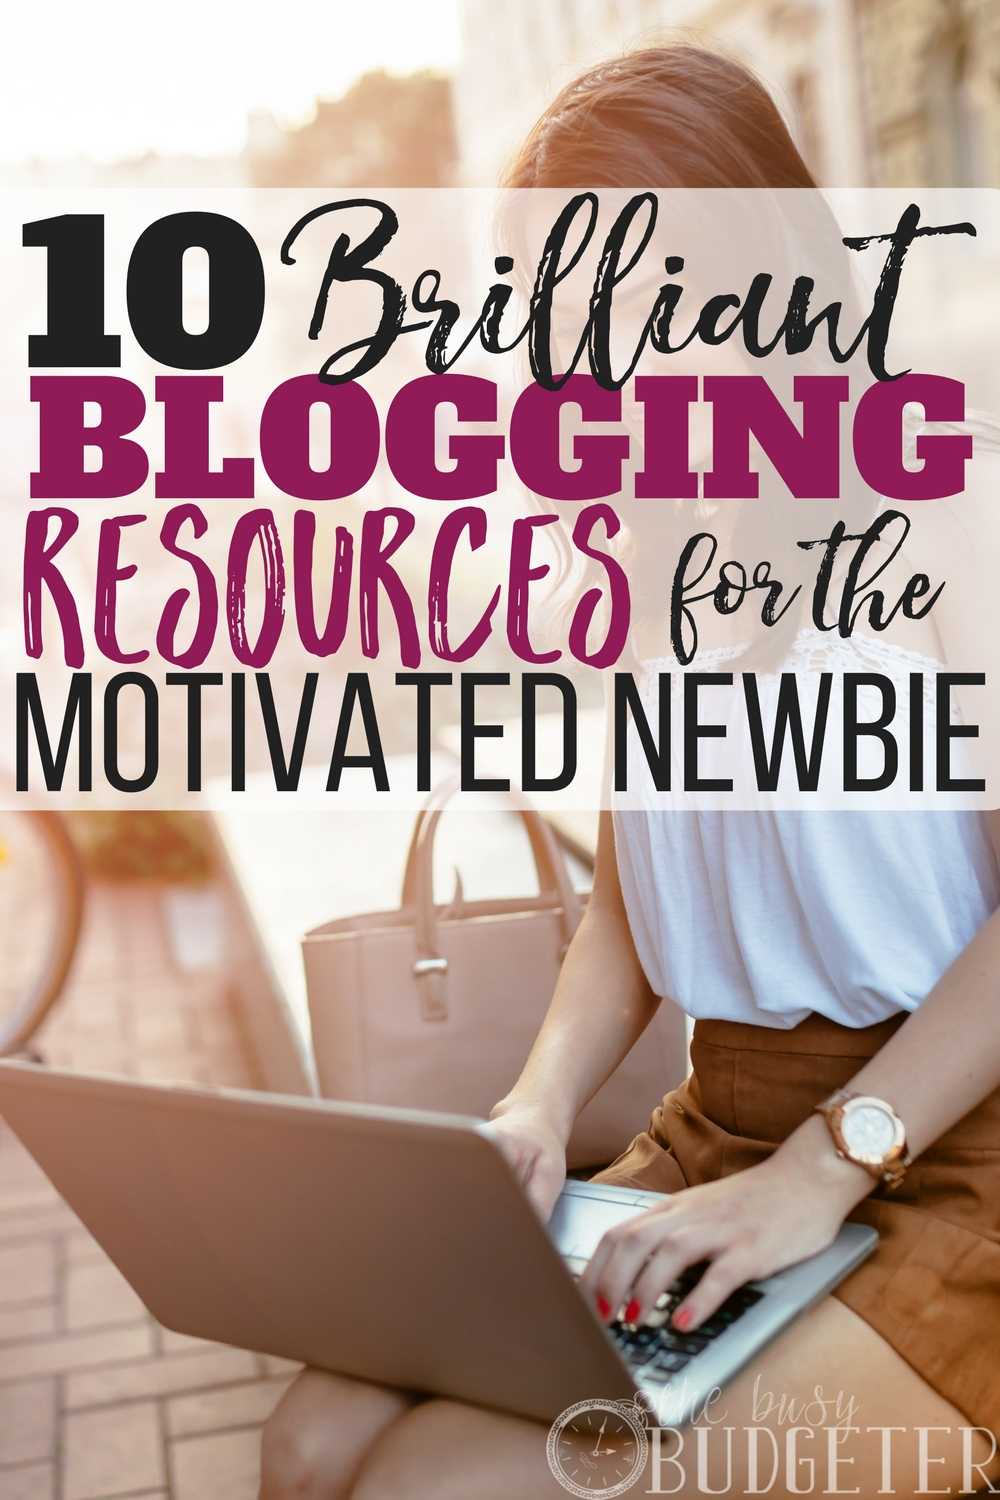 These blogging resources totally got me on track when I was a newbie! I couldn't have asked for a more detailed, thorough list by someone who really knows what they are talking about! Great article-- I'm totally suggesting these resources to any new blogger that contacts me!